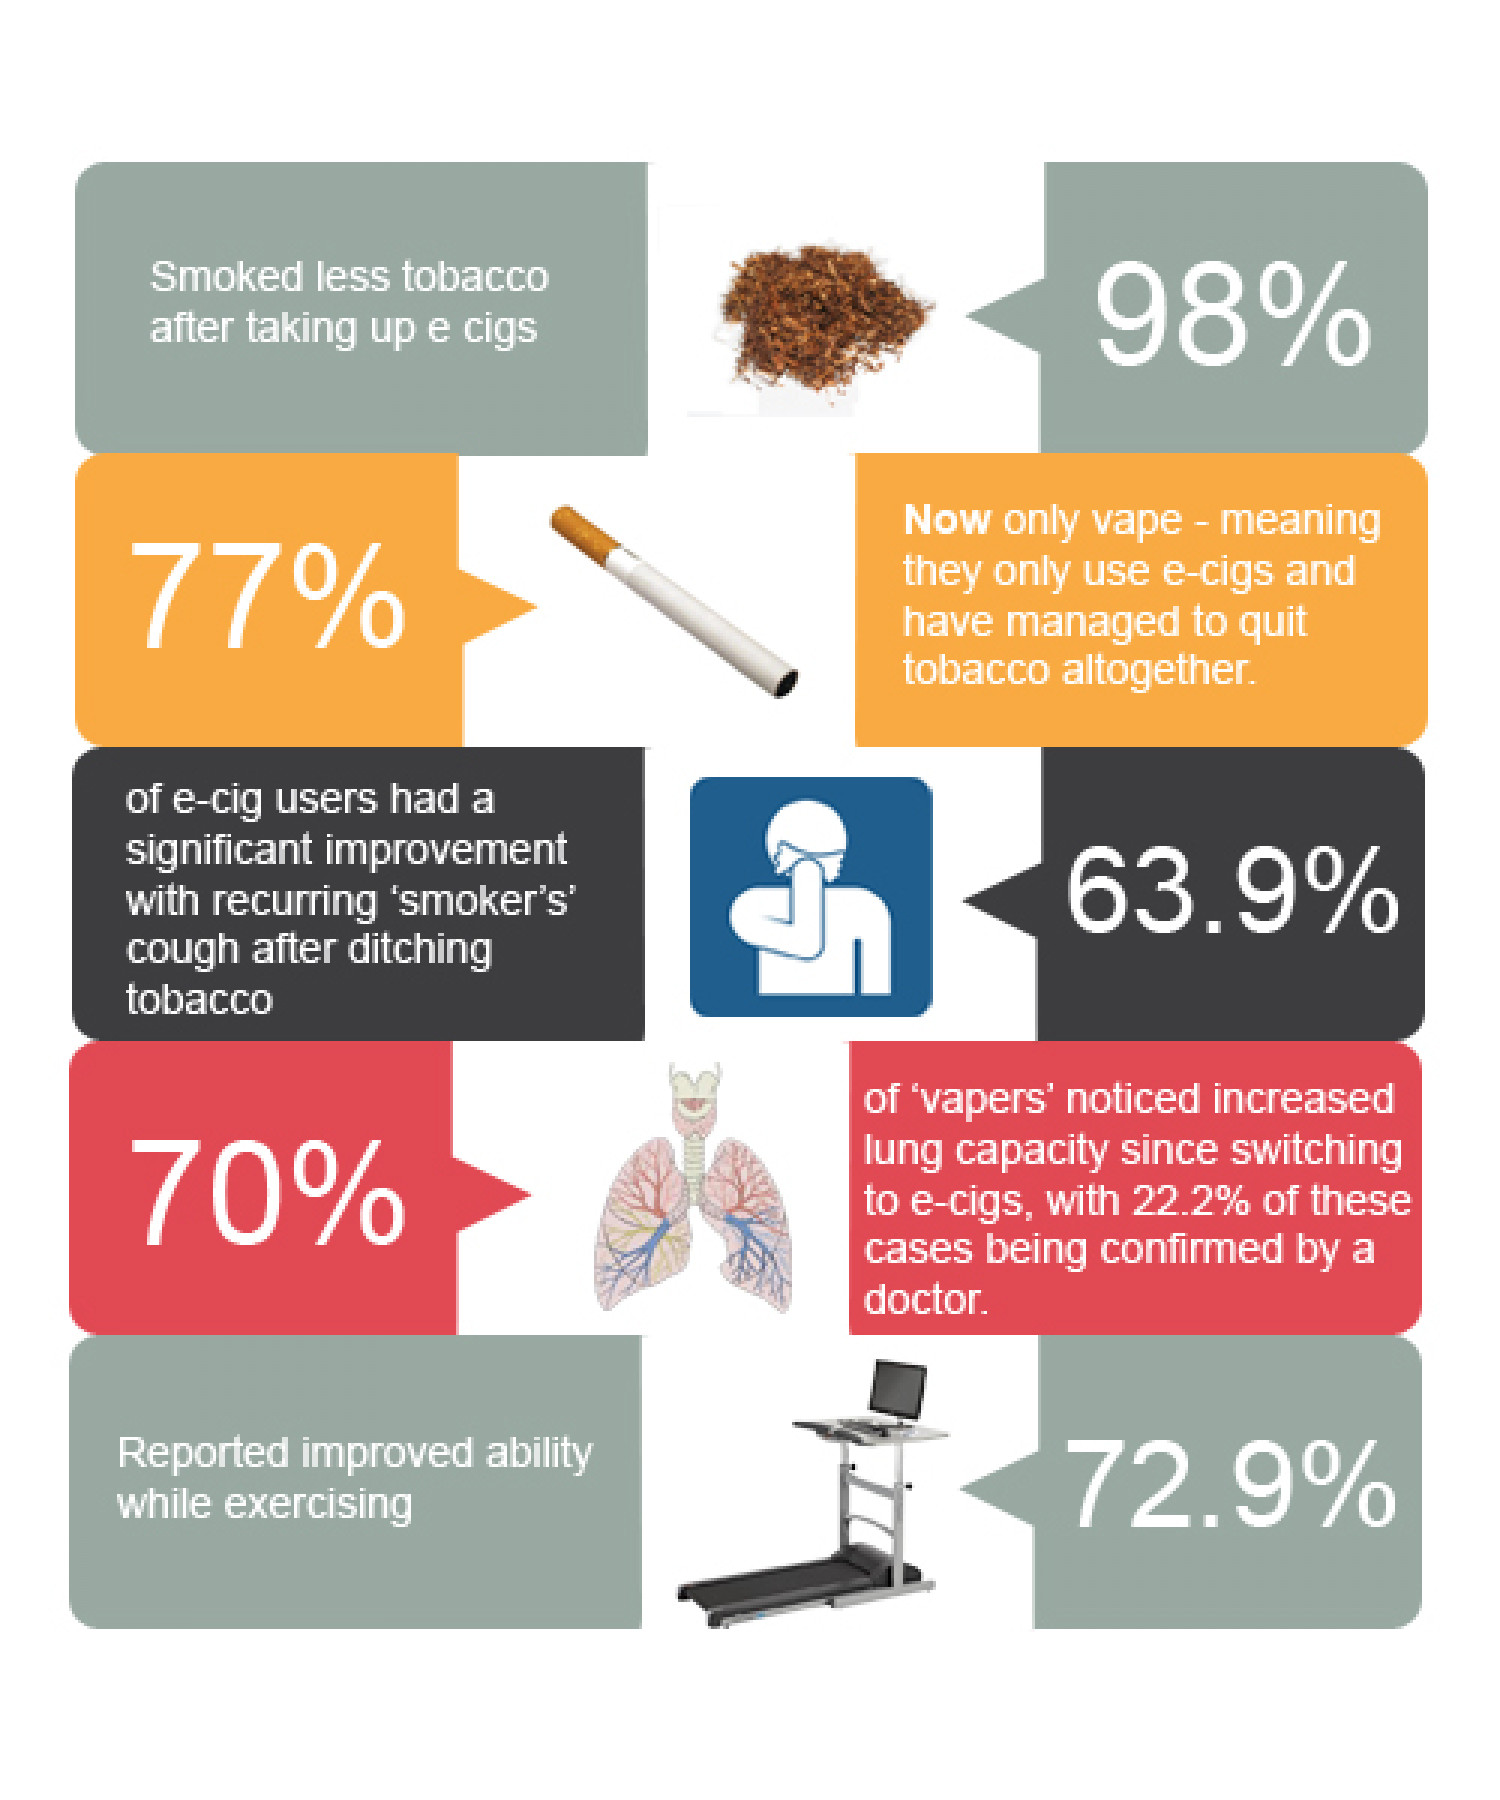 E Cigarette Direct UK Vapers Study Infographic